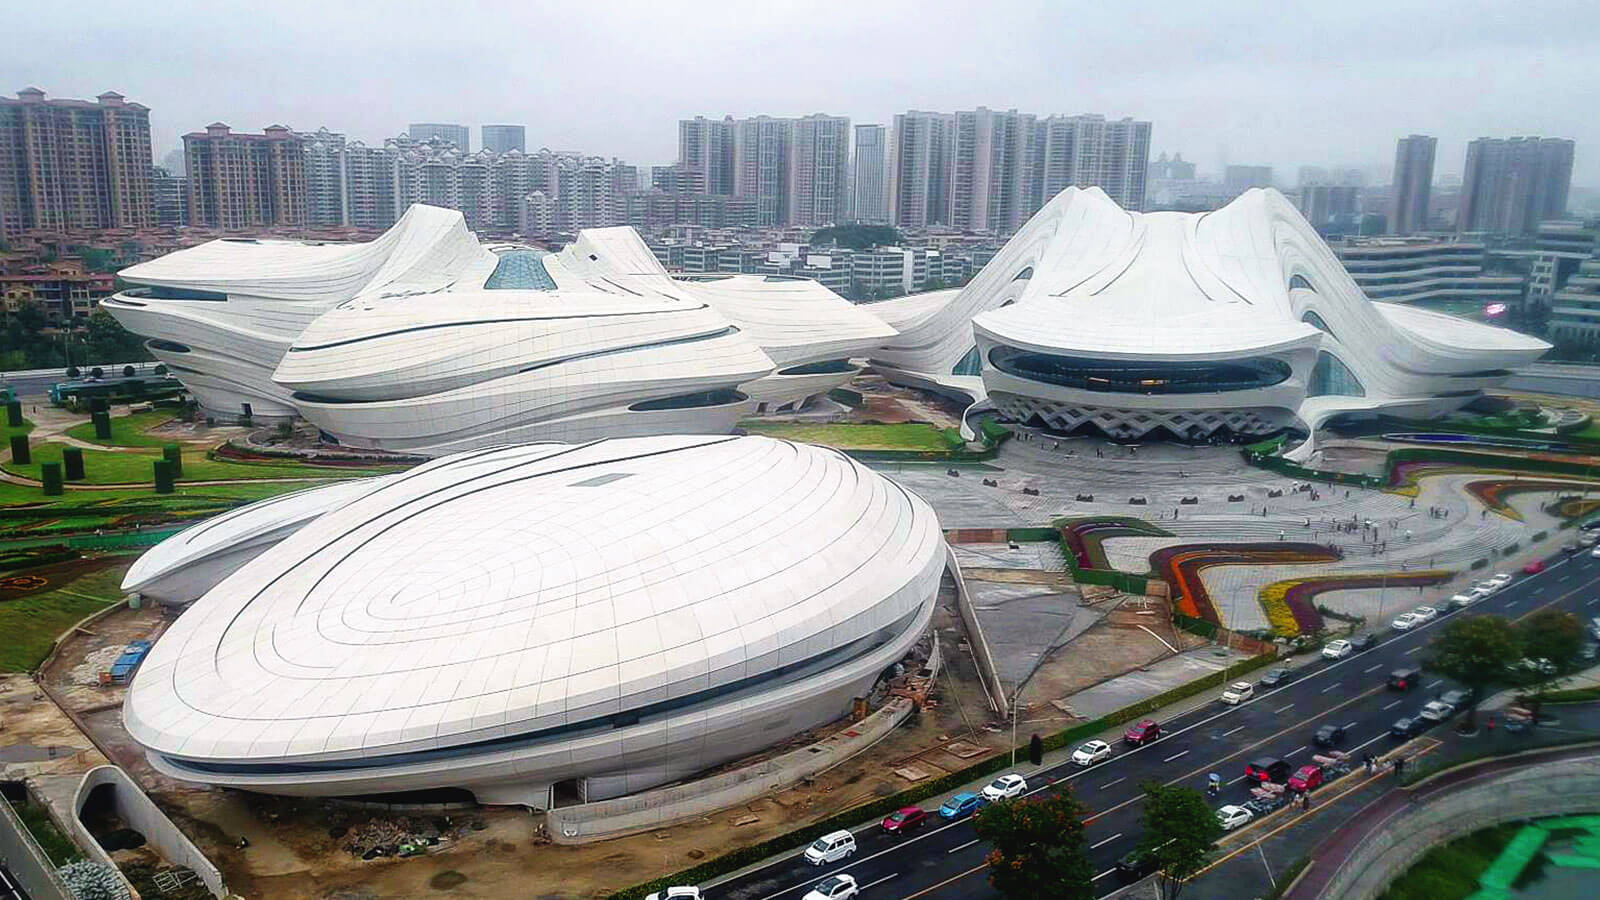 Stadium made of white concrete.